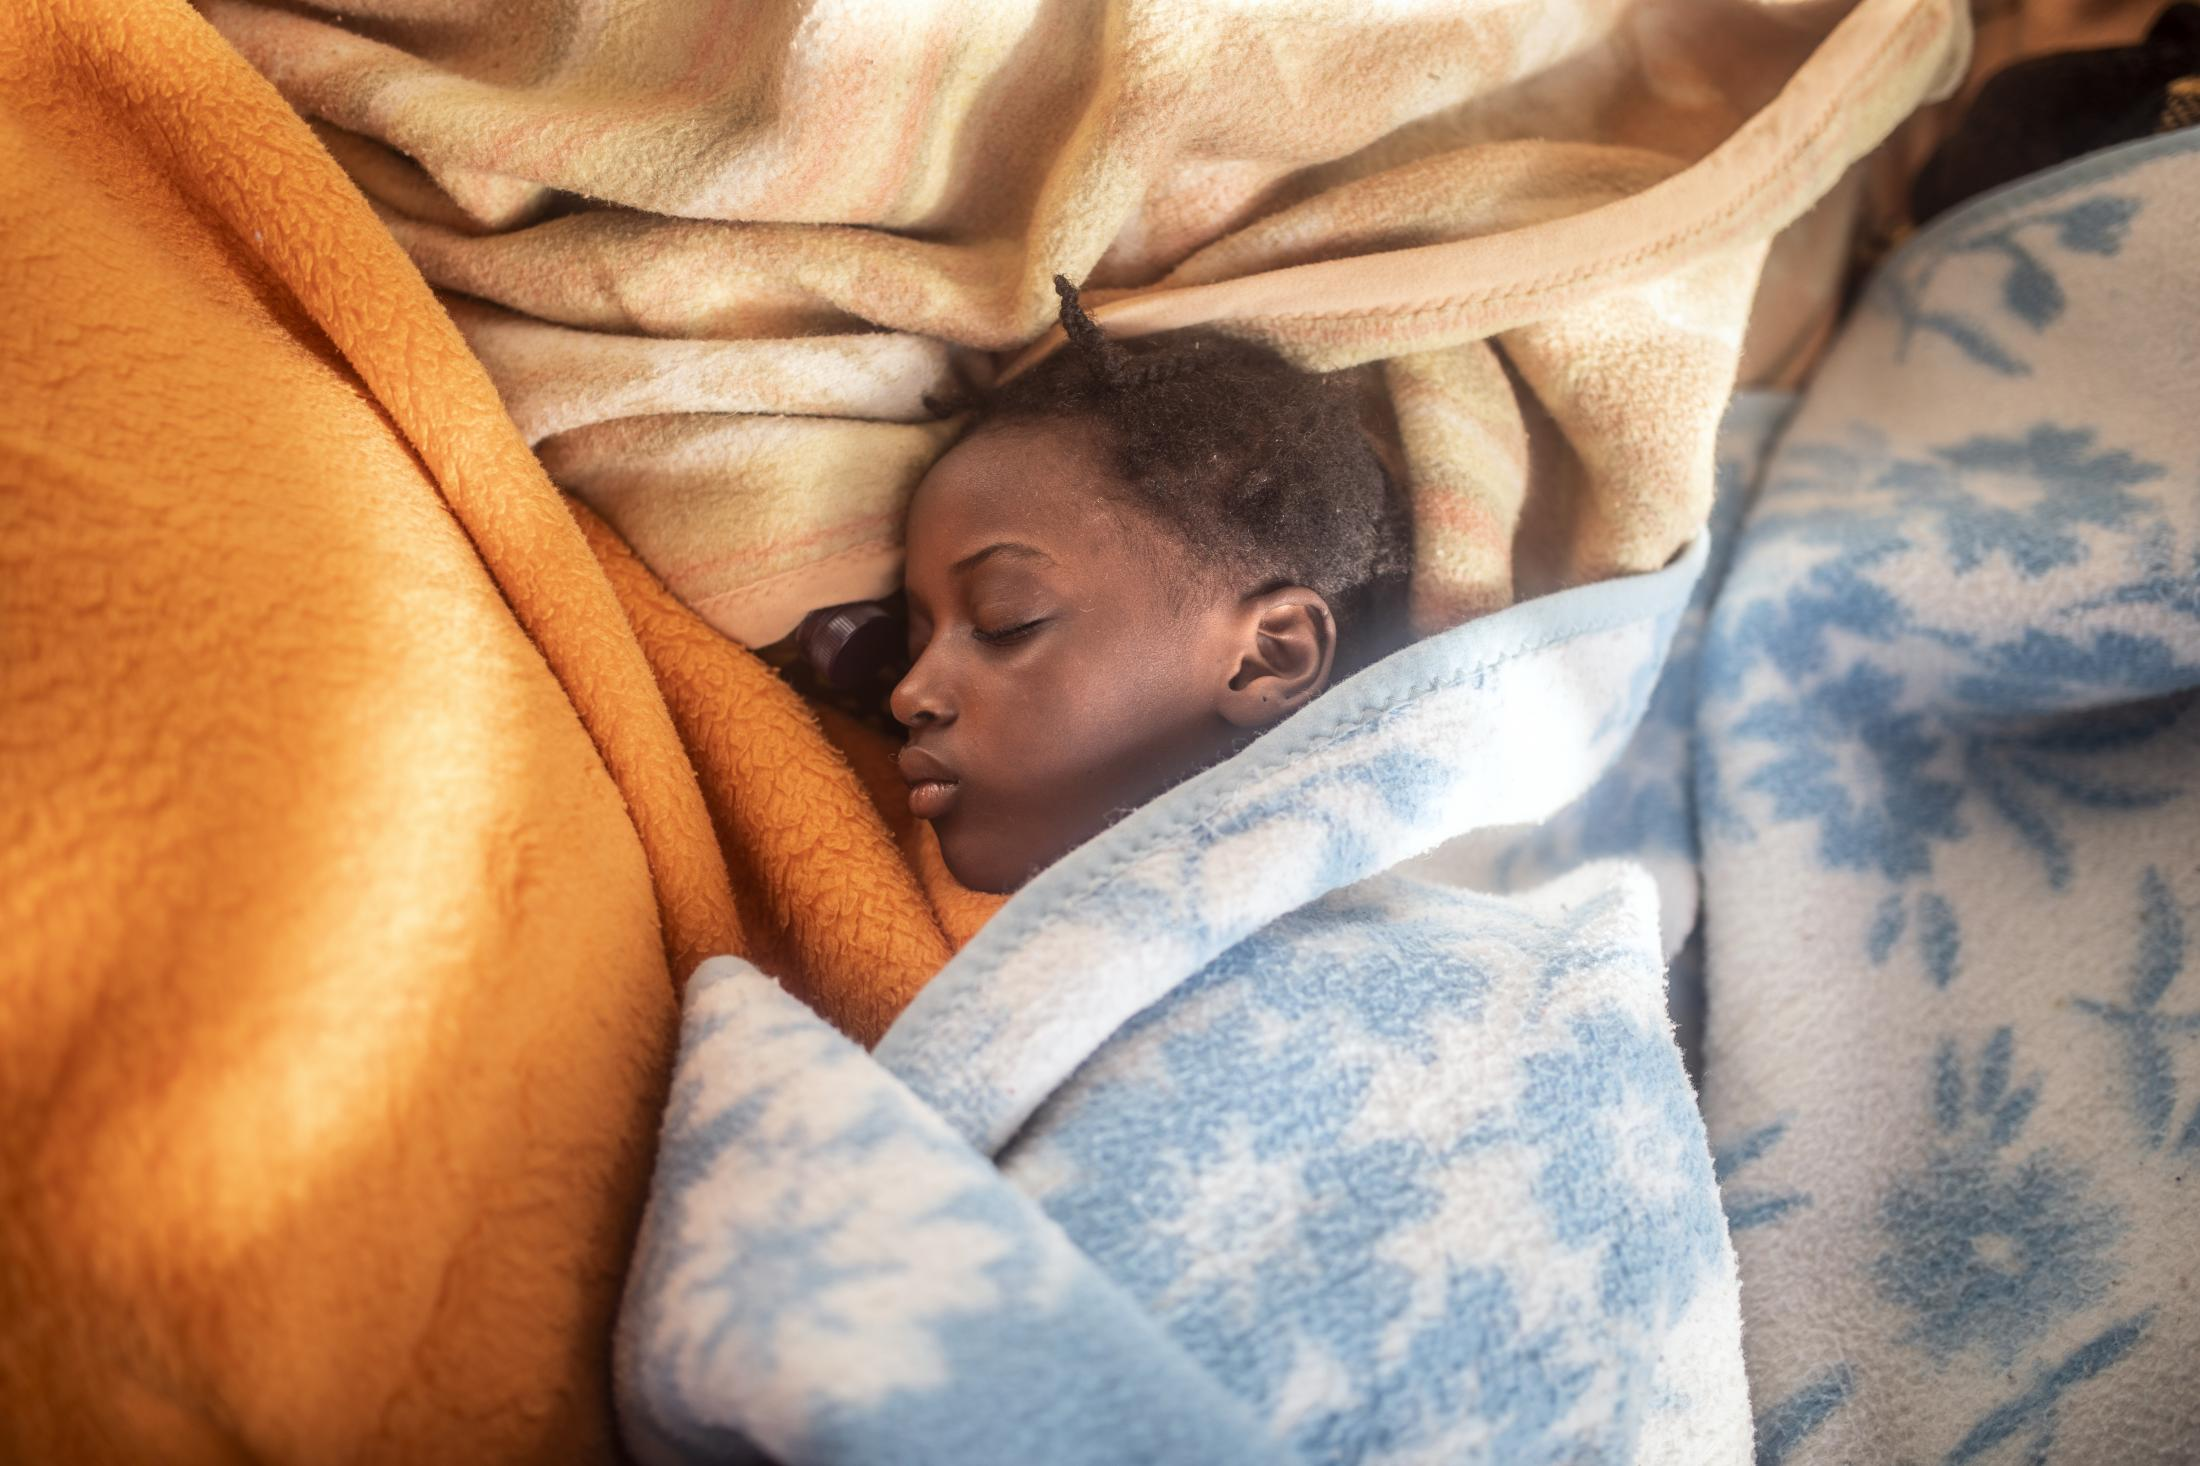 5 year old Timi sleeps between the blankets at her mother's feet, basking in the warmth of the sun's rays after been rescue by the Spanish NGO Open Arms Sunday, Feb. 14, 2021